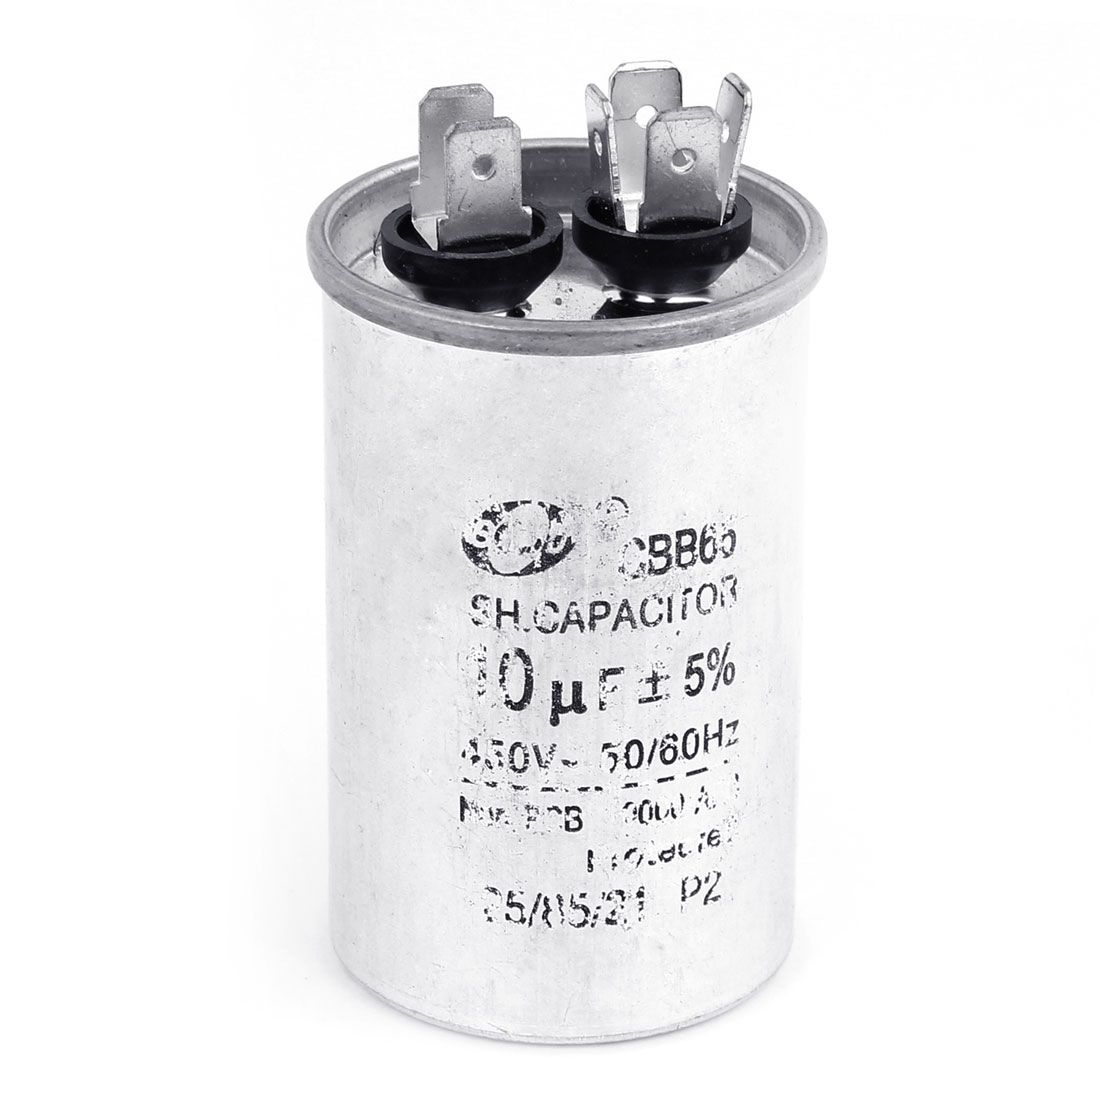 Uxcell Polypropylene Film Electric Motor Fan Capacitor 450vac 10uf Cbb65 10uf 12uf 15uf 16uf 20uf 25uf Af Electrical Equipment Electricity Capacitor